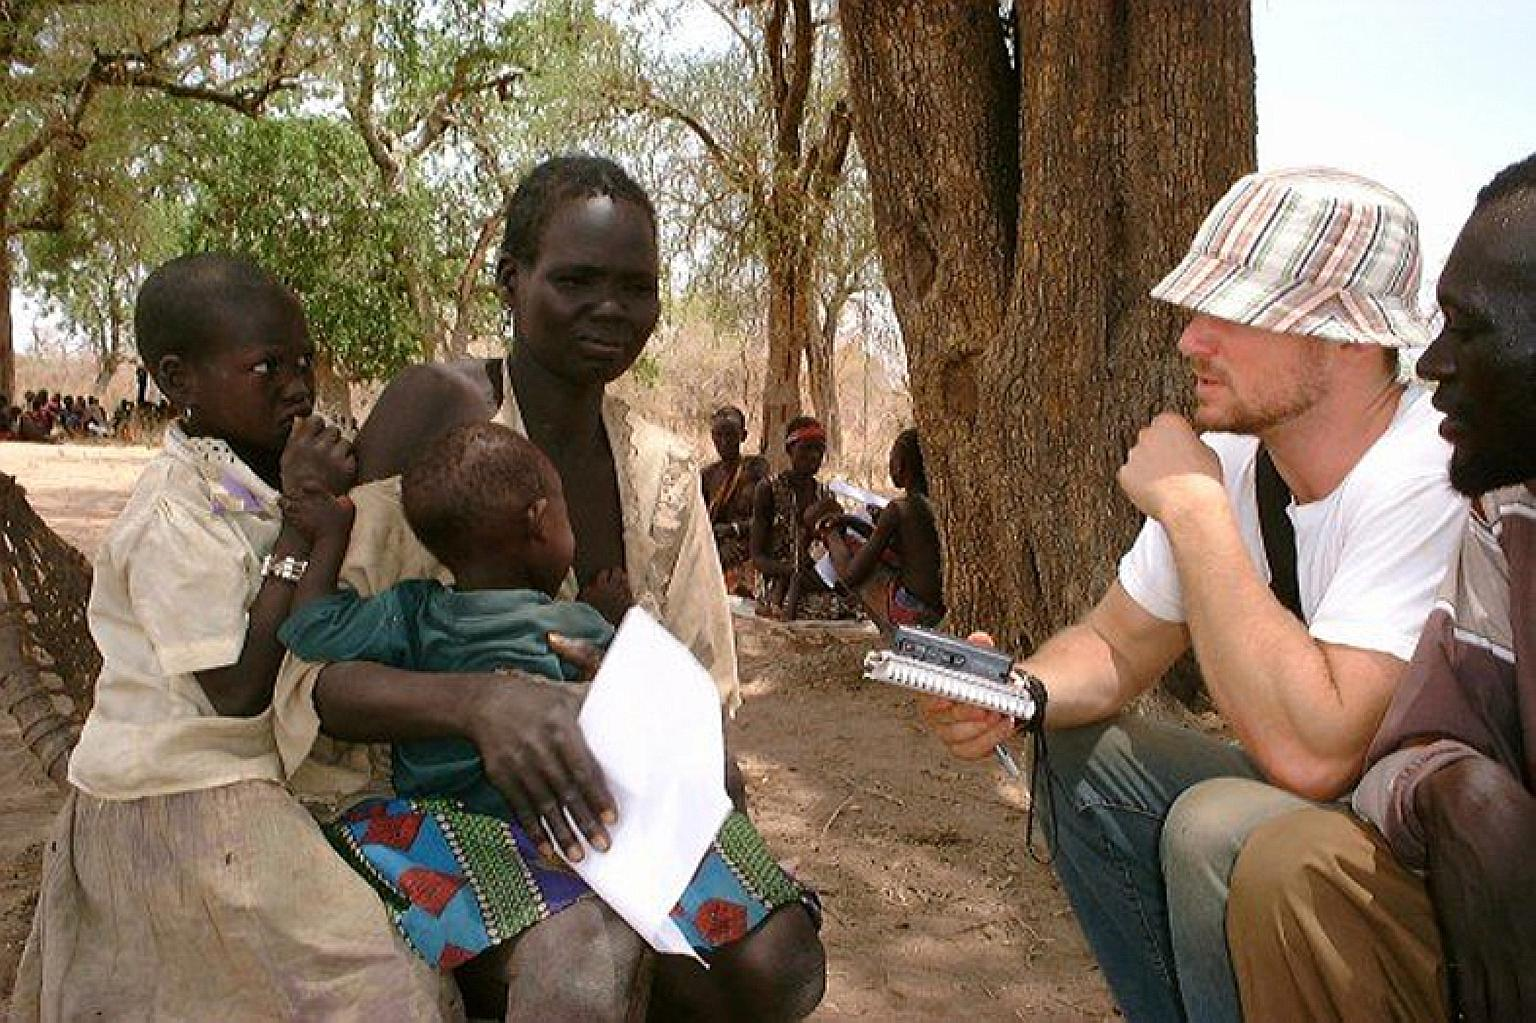 Mr Skinner on assignment in Sudan in 2003. He had persuaded Newsweek to let him fly to the front lines of the civil war there where slavery and human trafficking were booming. In Haiti, a man - just one of many traffickers who procure children from i